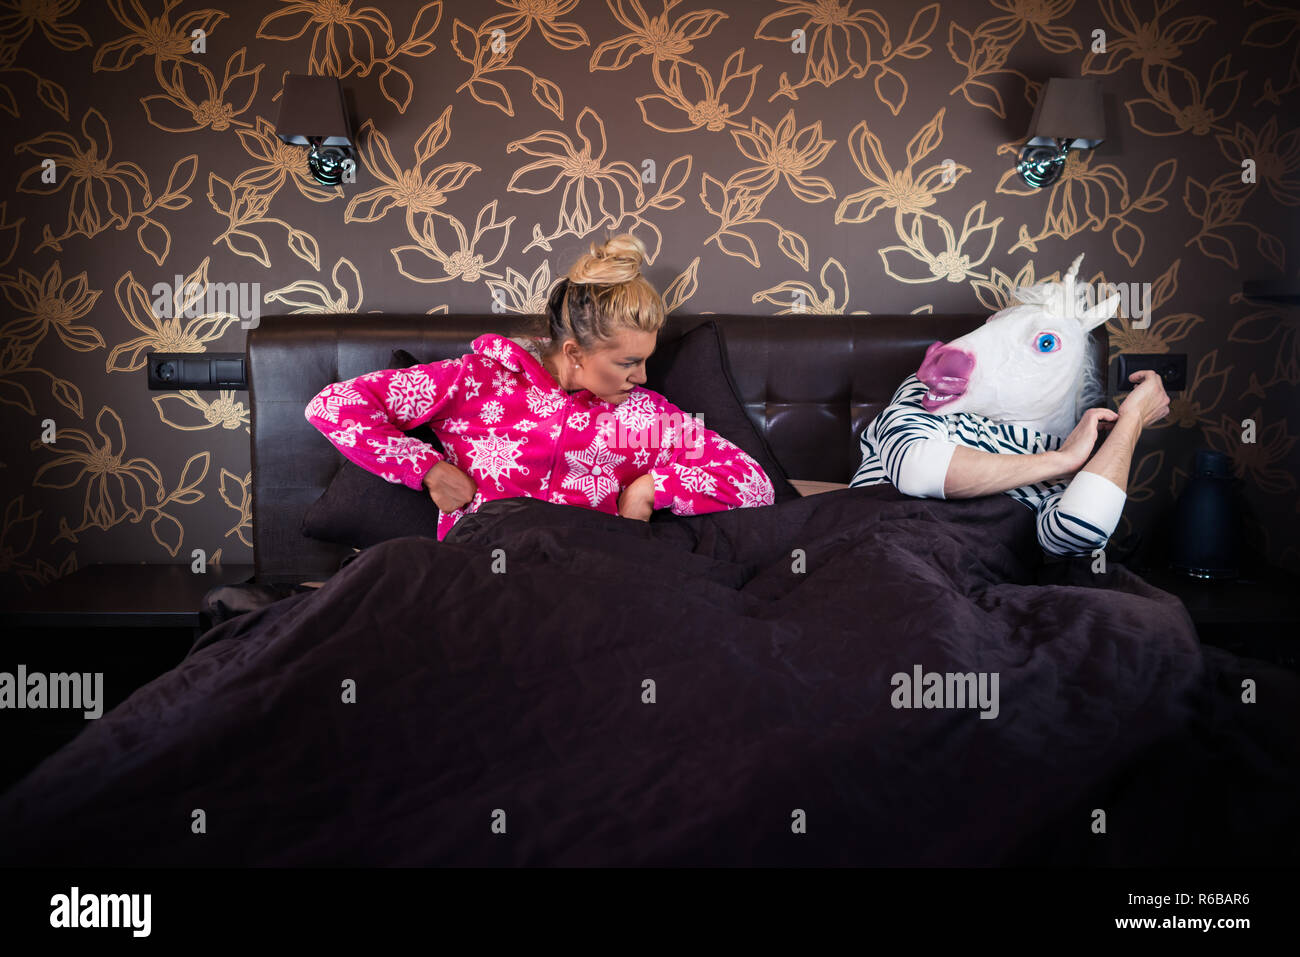 Serious young woman in pajama lying on bed with strange boyfriend in comical mask. Unusual couple has relationship problems at the stylish bedroom. - Stock Image